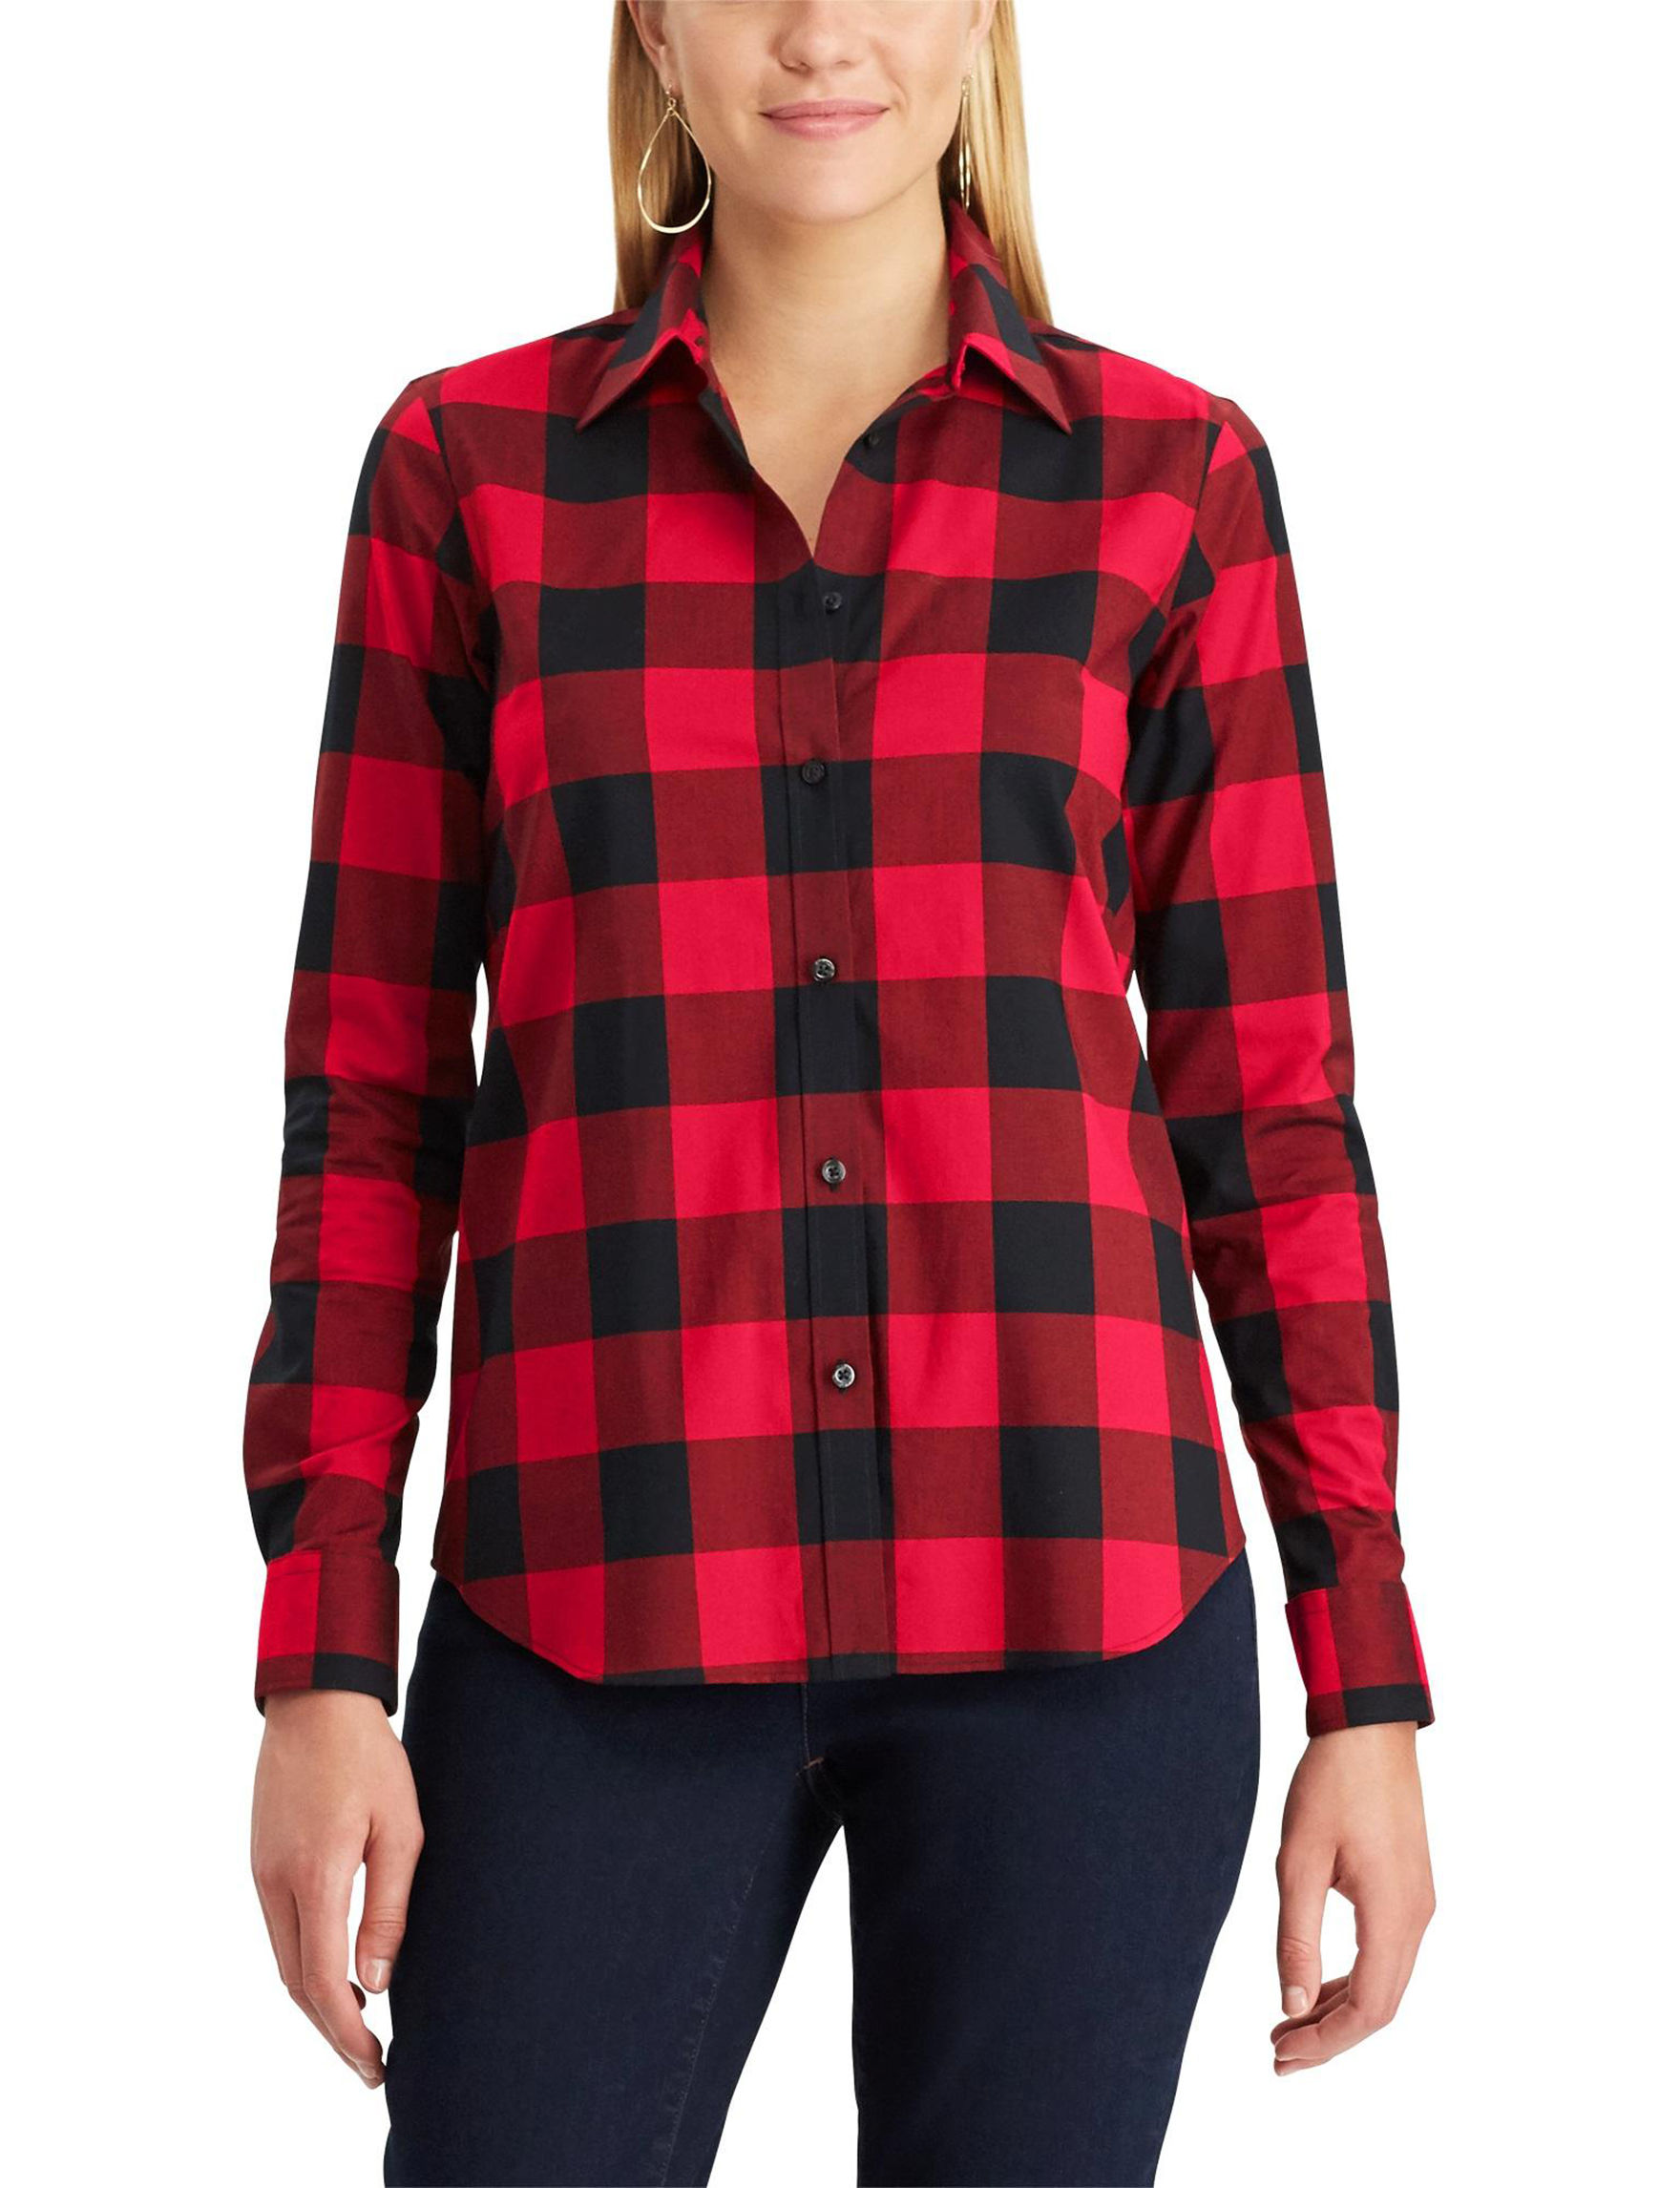 Chaps Black / Red Shirts & Blouses